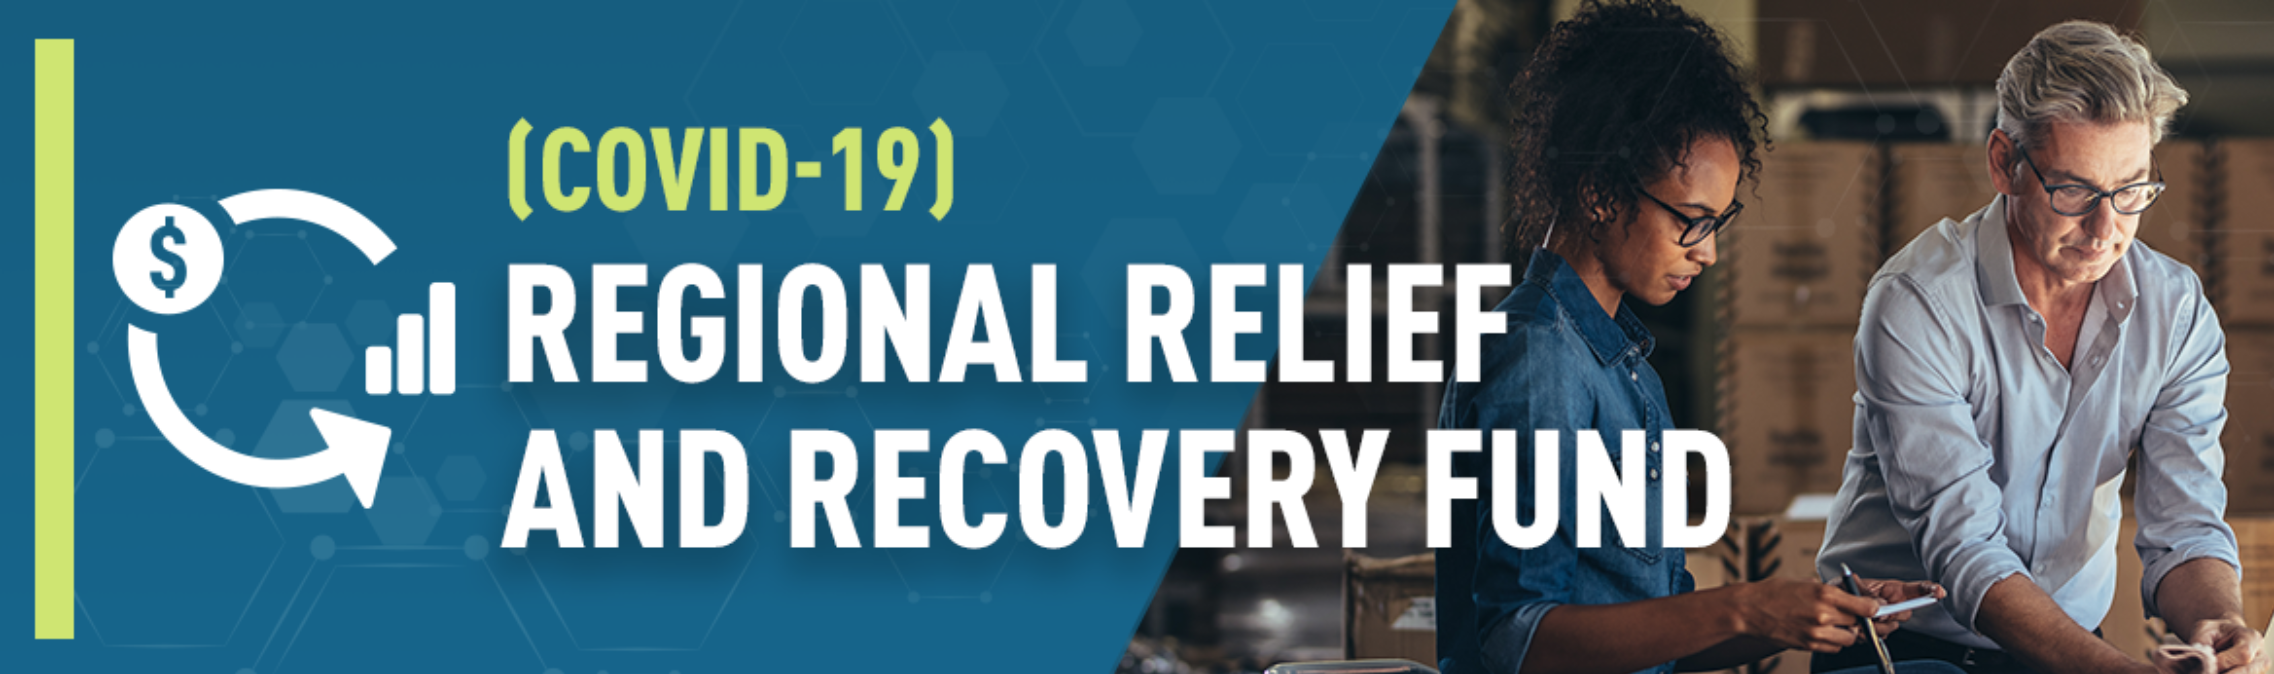 Regional Relief and Recovery Fund image